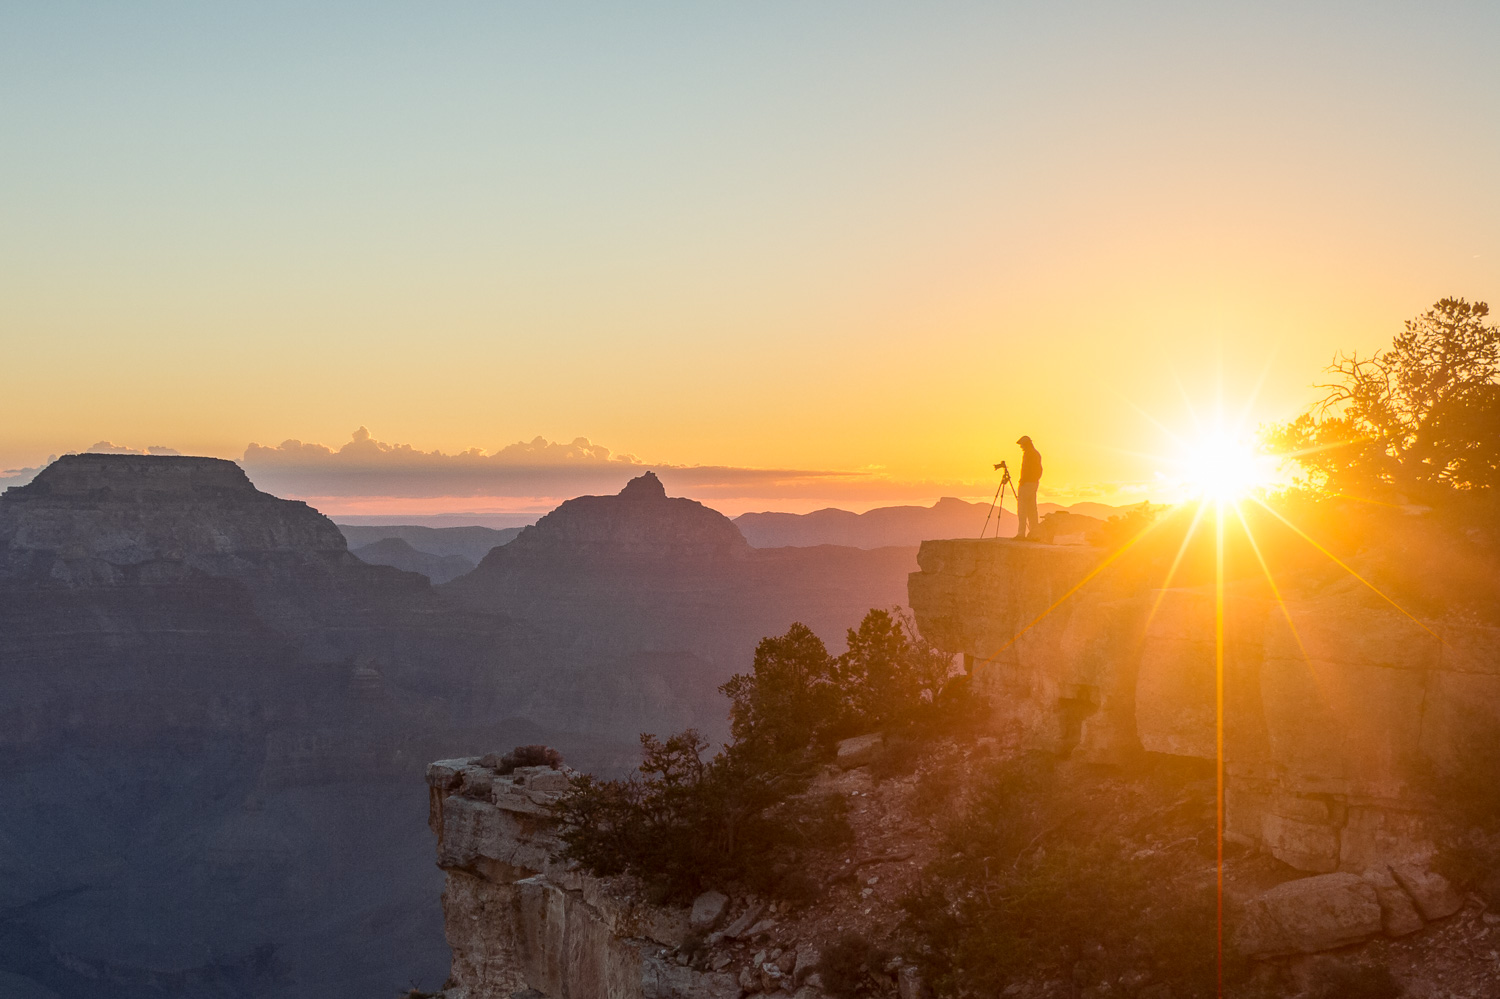 Overlooking the Grand Canyon in Arizona, United States - Sunrise at the Grand Canyon - Photography by Christophe Van Biesen - Luxembourg Landscape and Travel Photographer - About Me